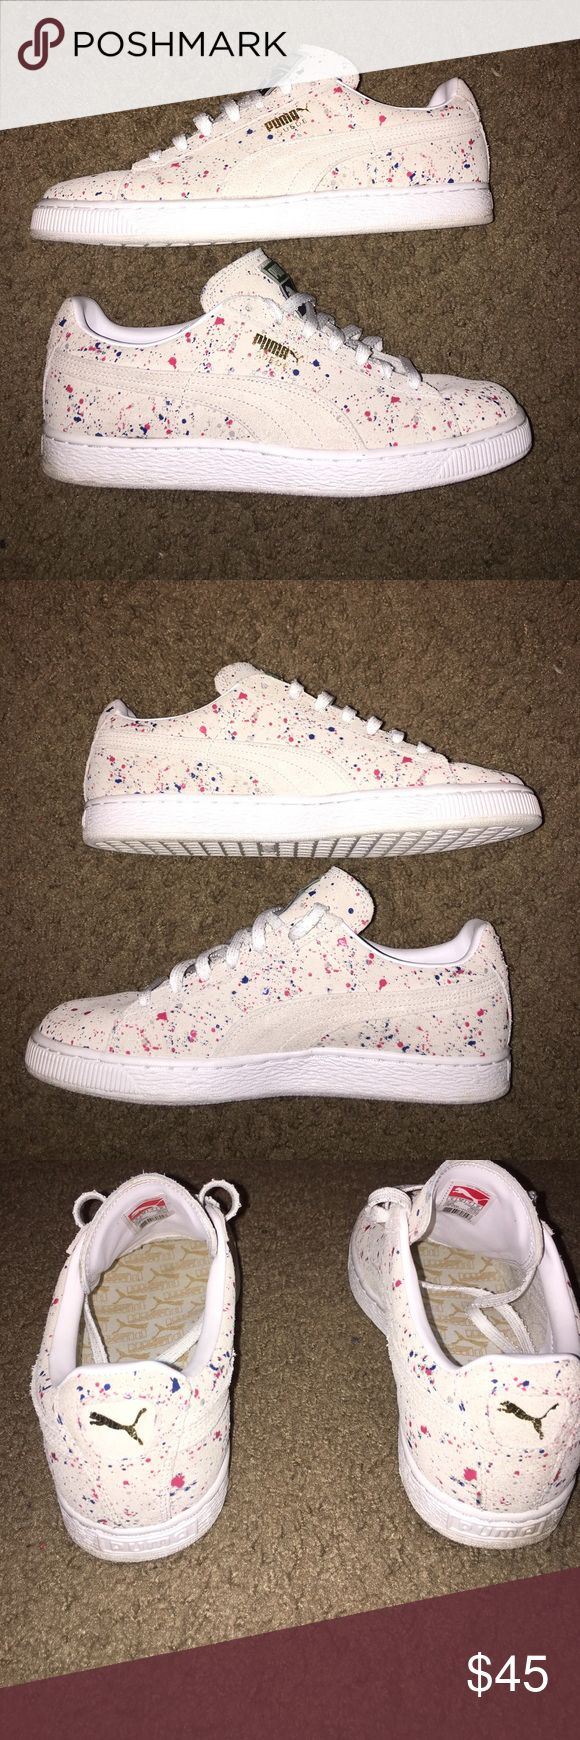 """PUMA SUEDE """"ALL OVER SPLATTER"""" MENS SIZE 9 PUMA SUEDE """"ALL OVER SPLATTER"""" MENS SIZE 9 GREAT CONDITION Puma Shoes Sneakers"""